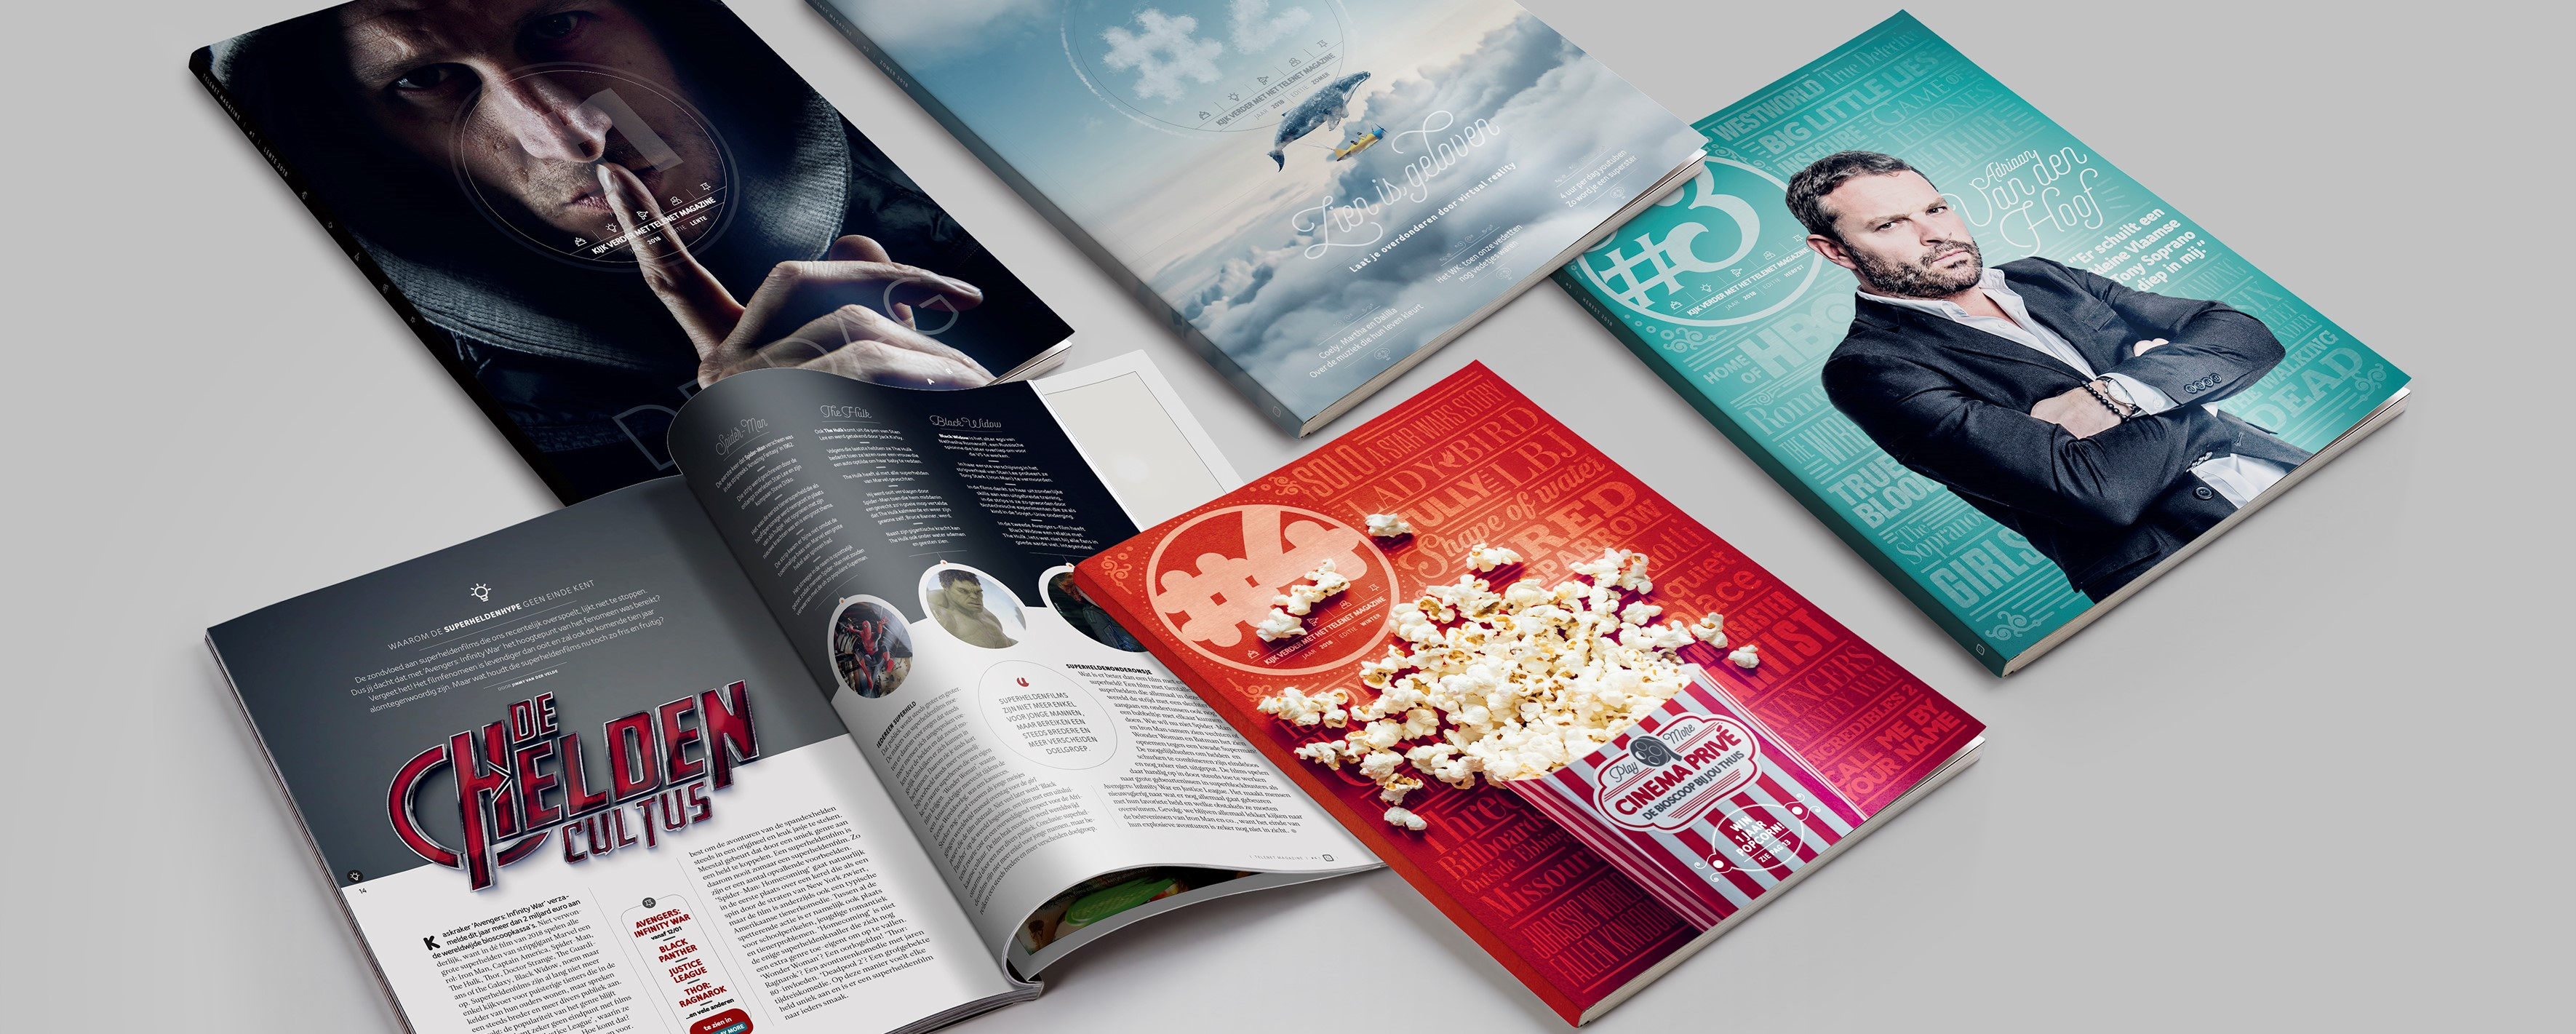 Telenet magazine - content marketing case